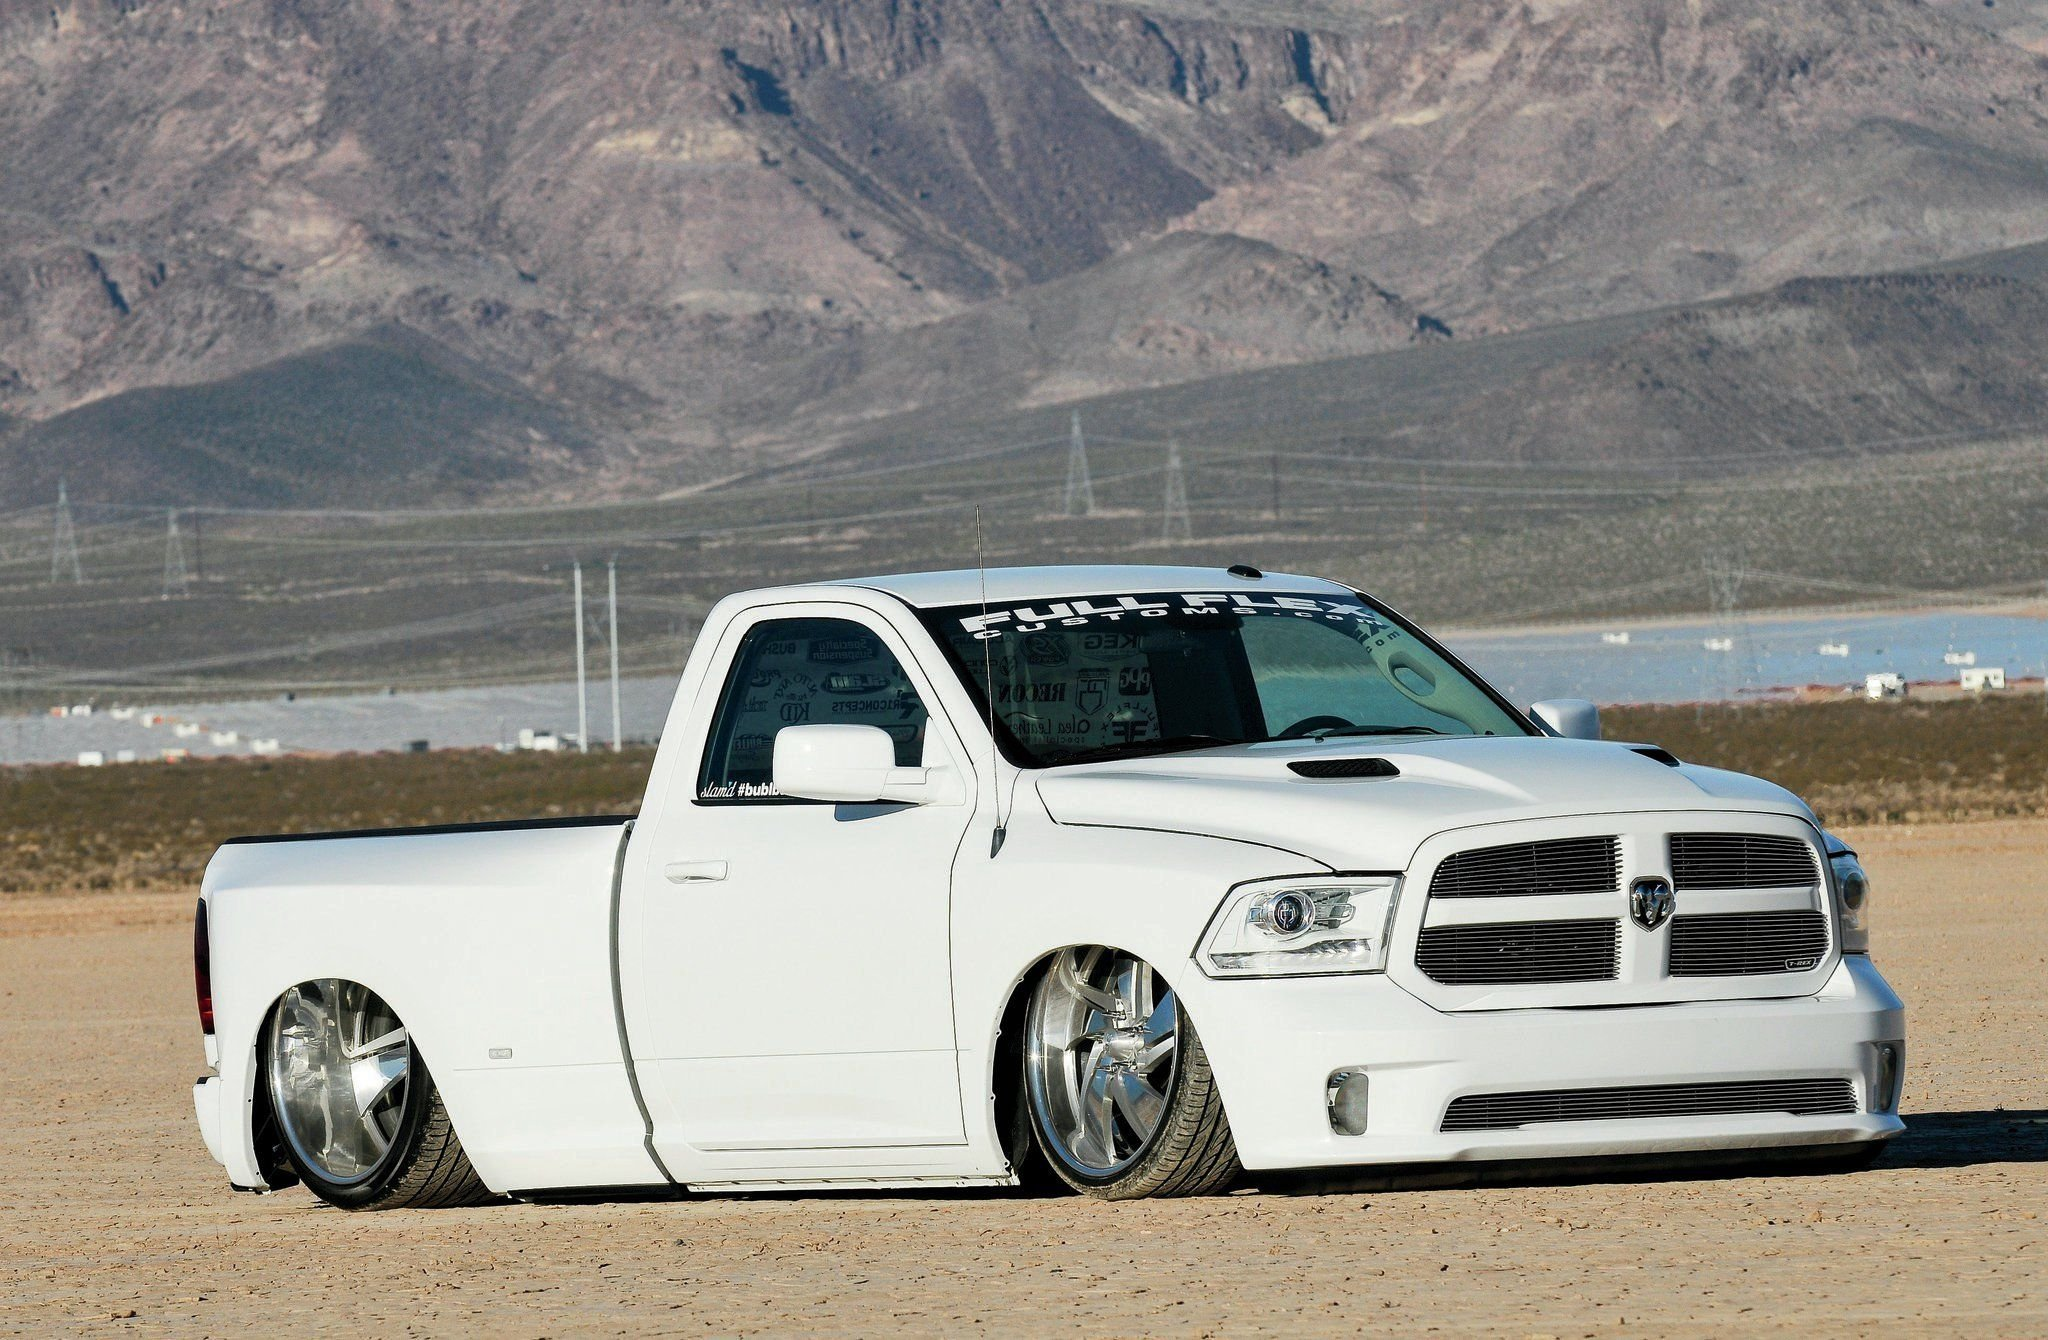 2014 dodge ram 1500 dualie pickup custom tuning hot rod. Black Bedroom Furniture Sets. Home Design Ideas